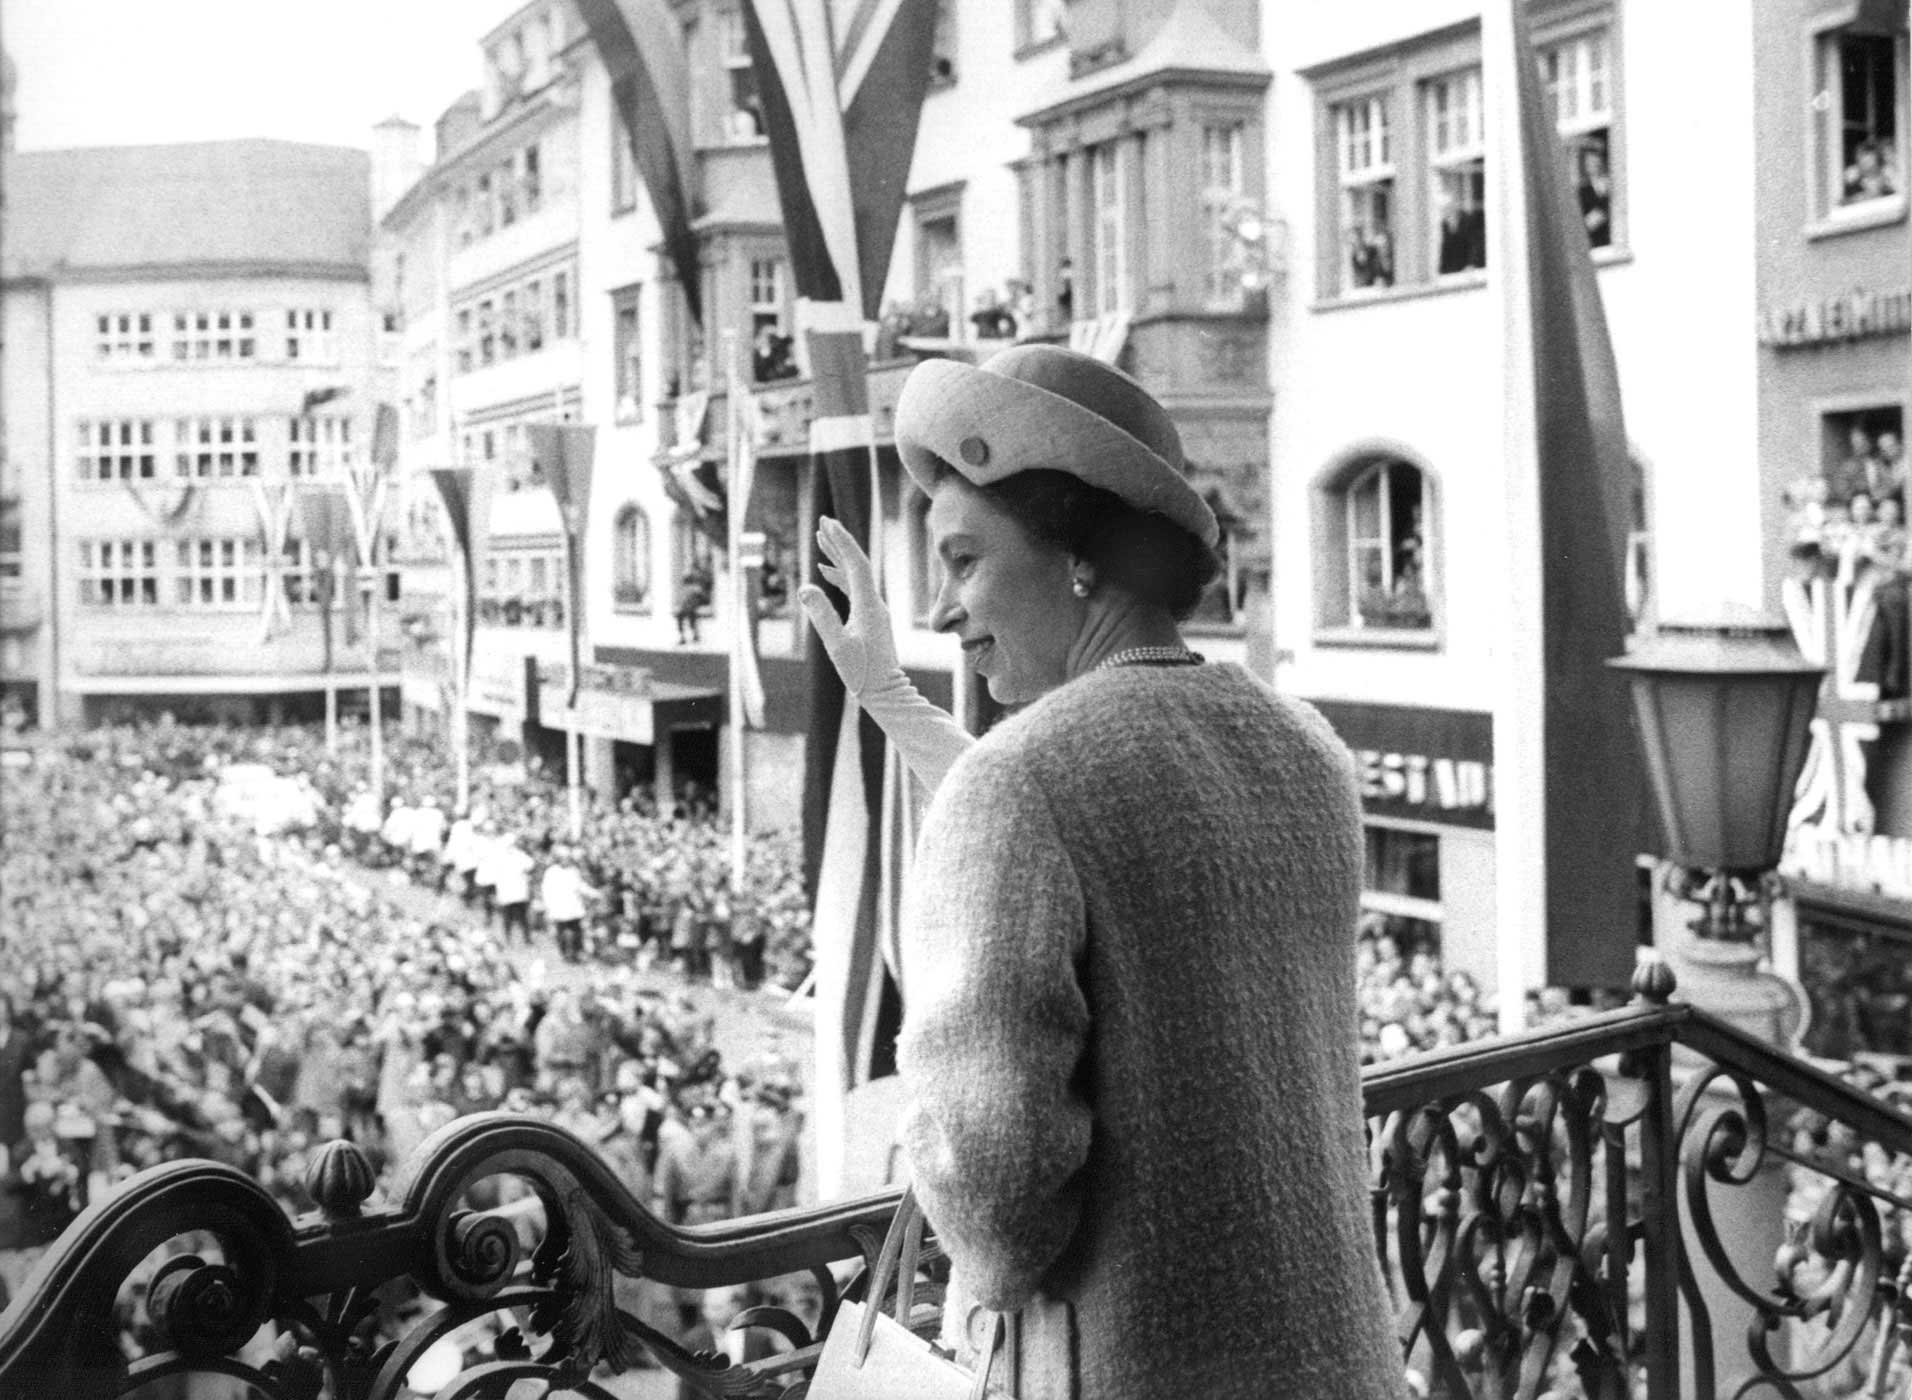 Queen Elizabeth II waves to onlookers from a balcony in Bonn, Germany, on May 19, 1965. The Queen and her husband were on an 11-day state visit. Throughout her time as Queen, Elizabeth would become the most widely traveled of any previous monarch.